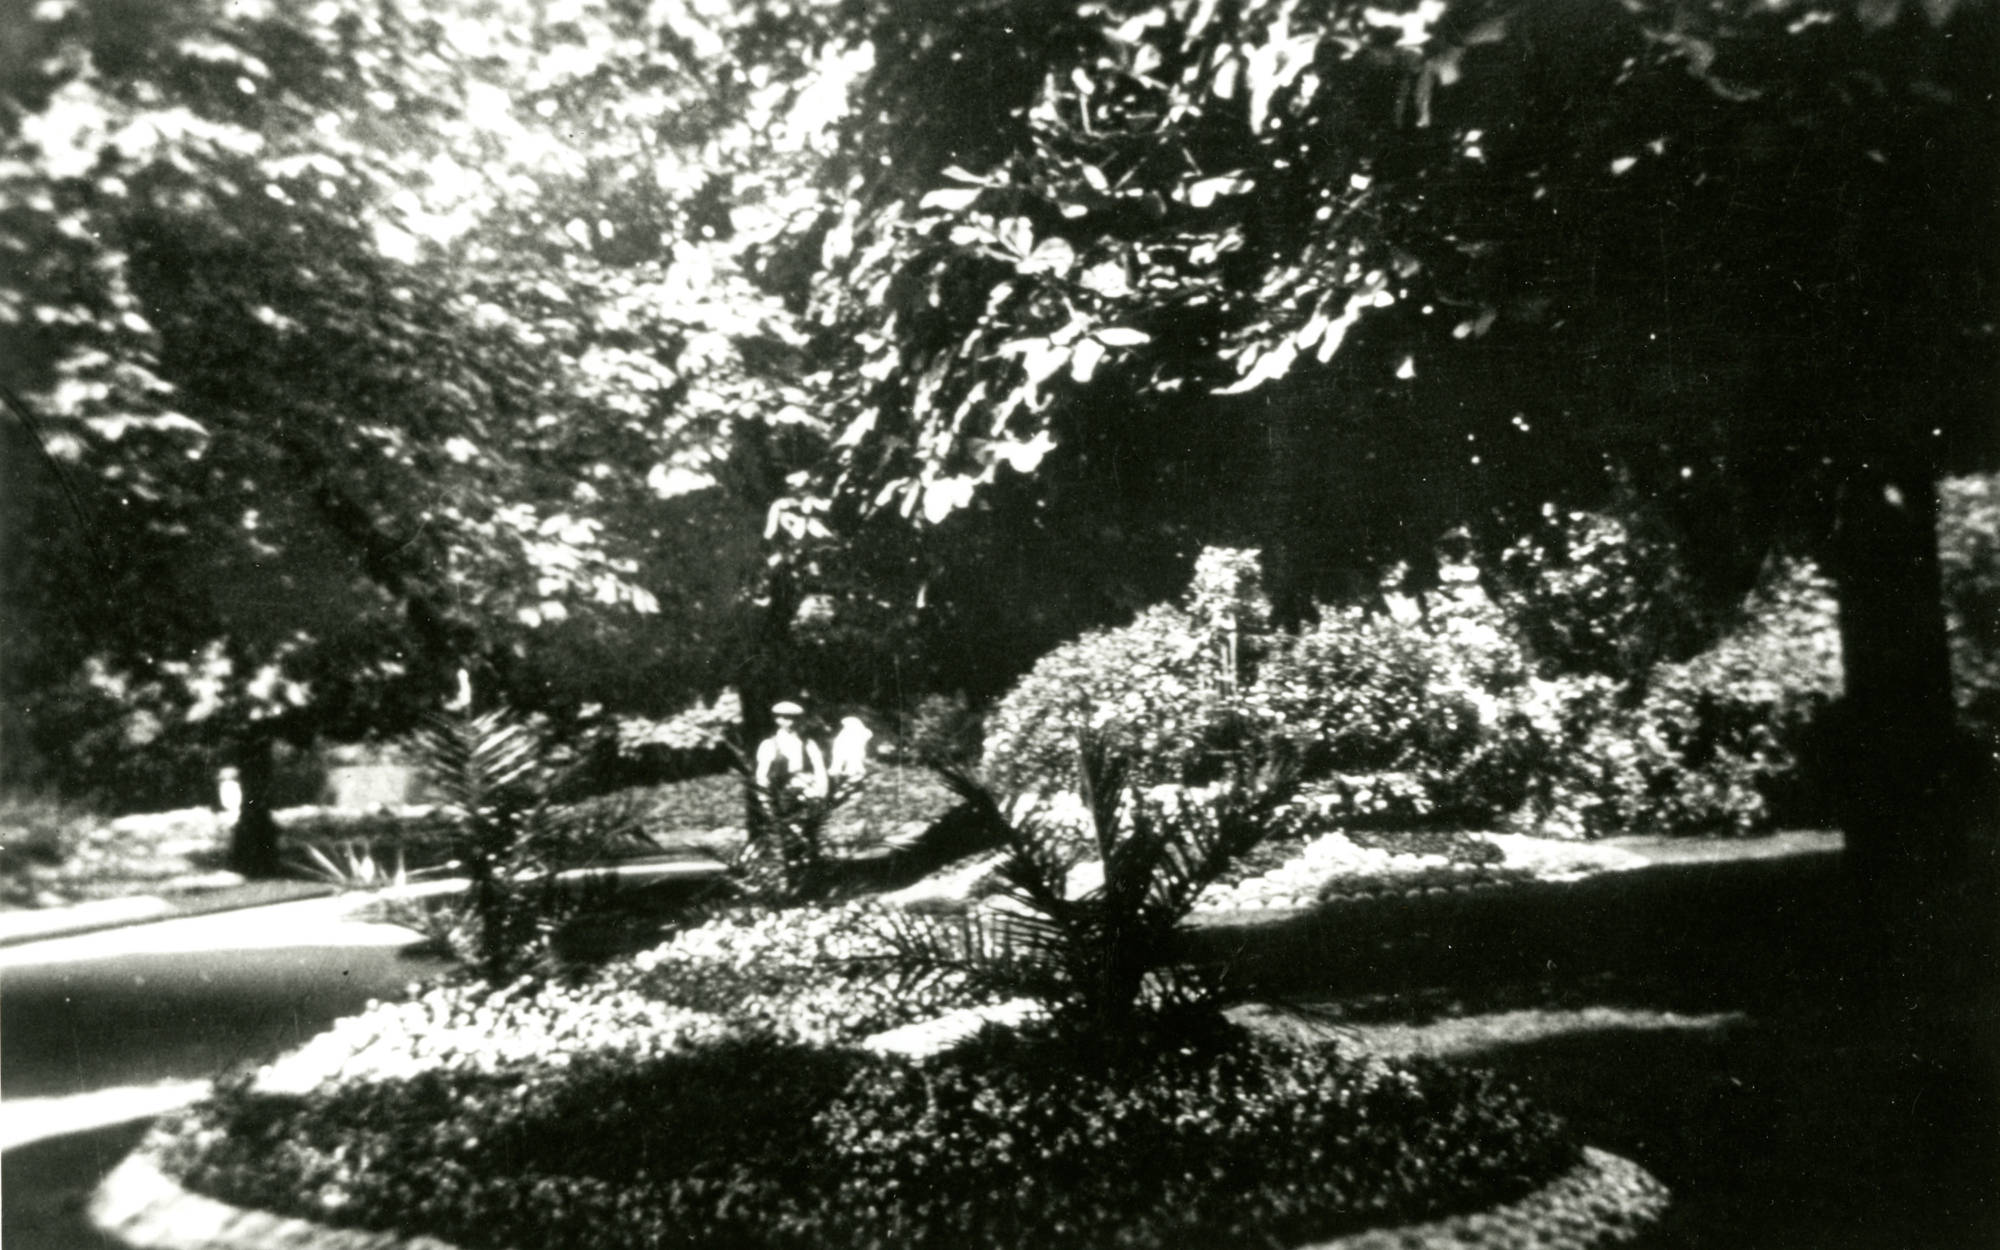 Late 19th century view of the Aviary garden looking North from the top of Wildflower Valley